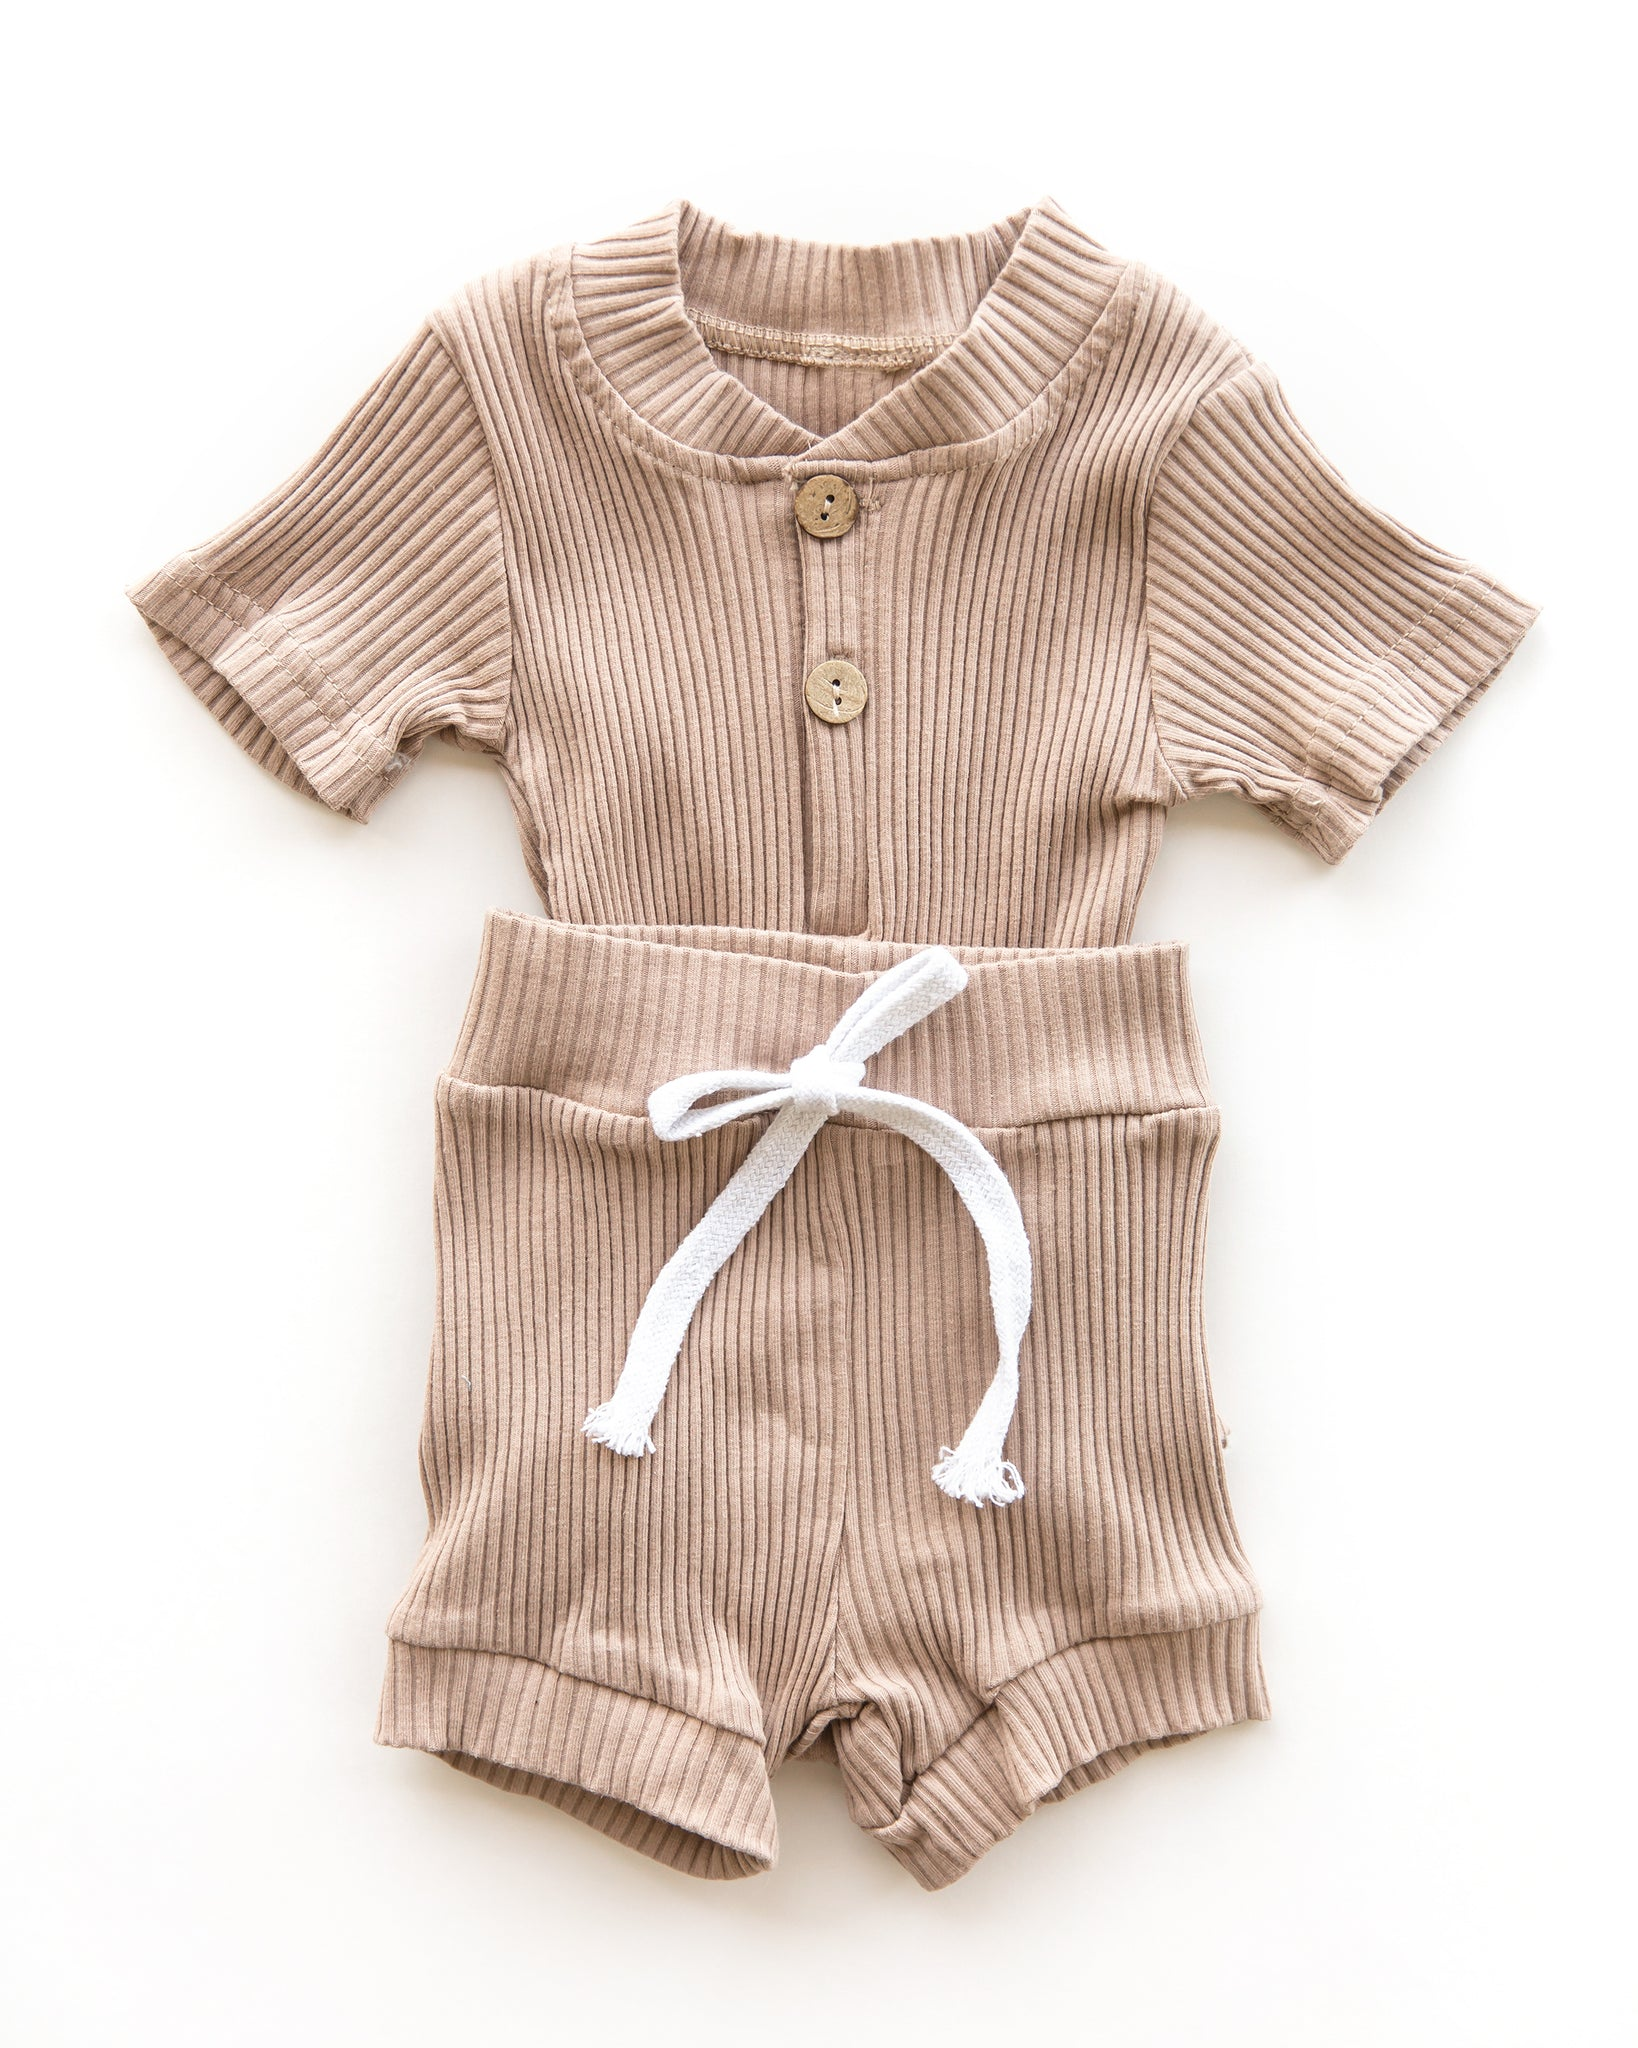 Lennon Outfit in Caramel - Reverie Threads